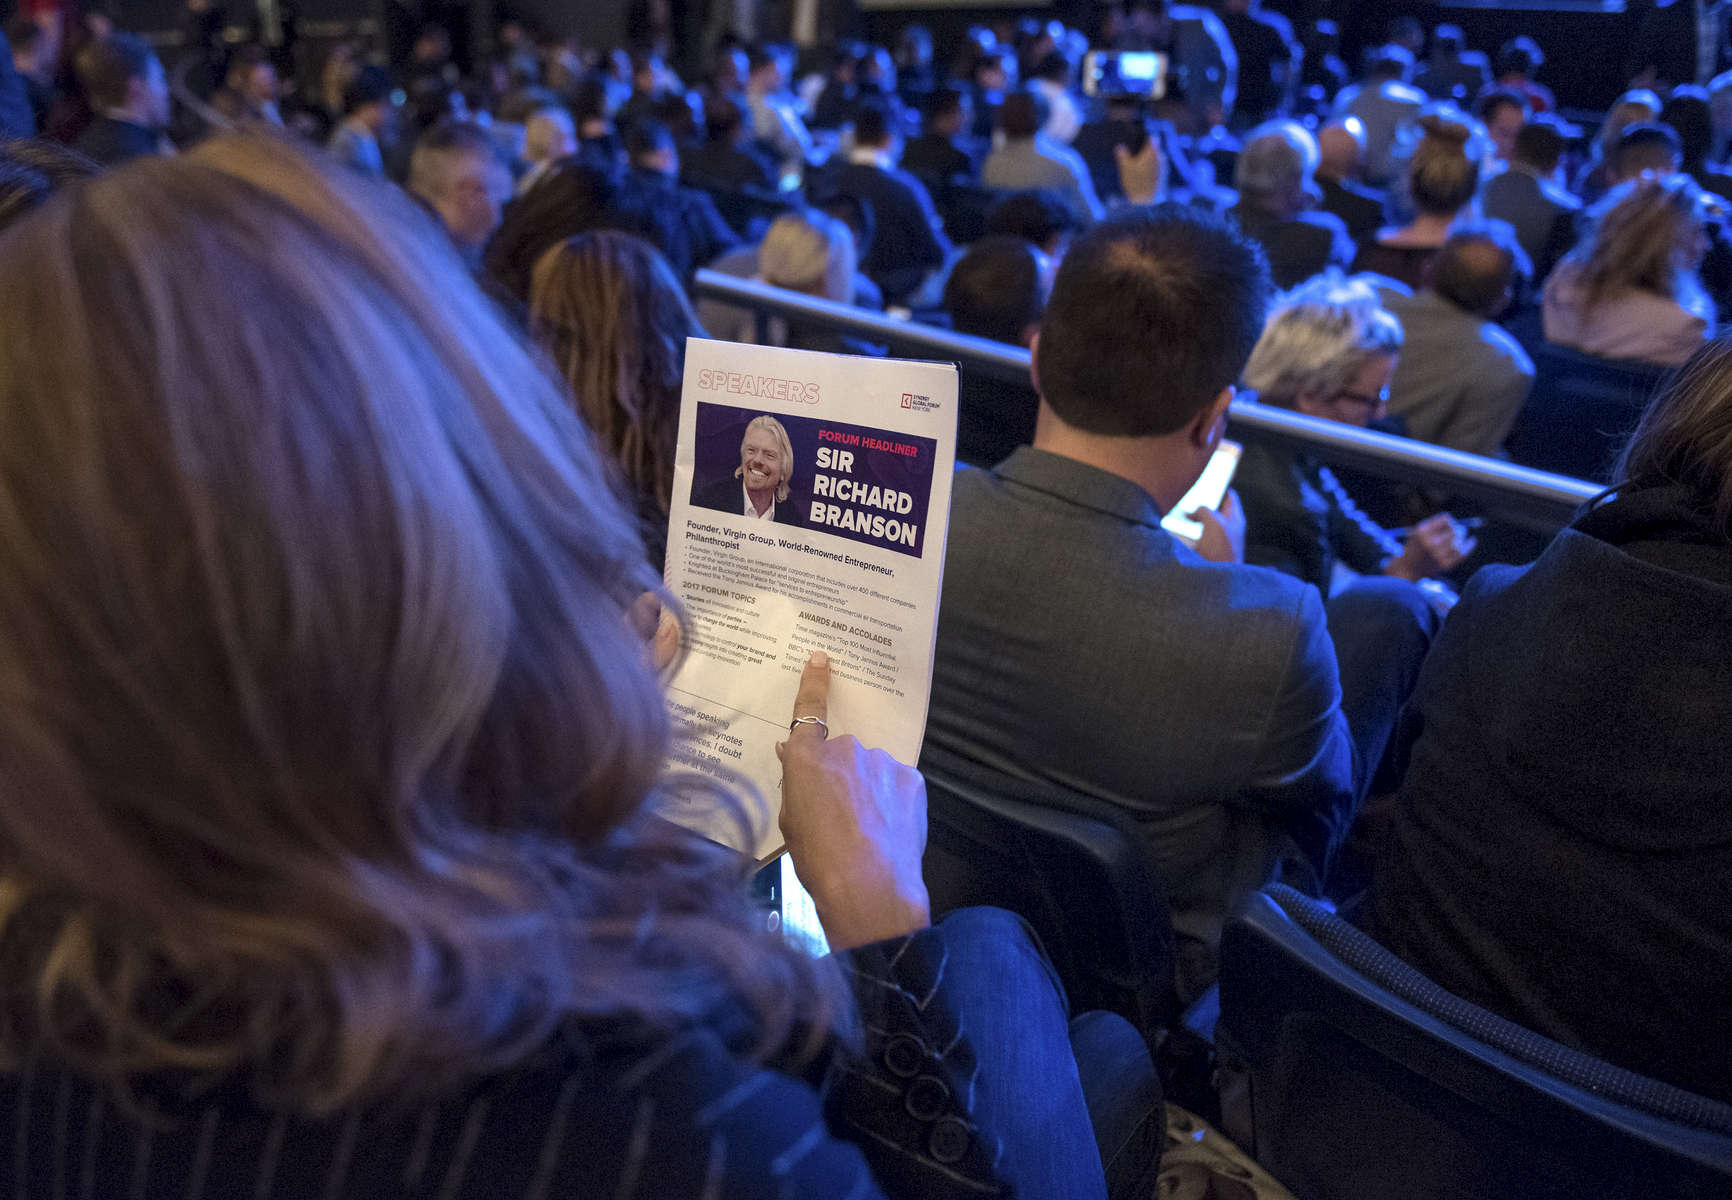 Richard Branson is speaking at the Synergy Global Forum NY at The Theater at Madison Square Garden October 28, 2017. Photo by Ron Wyatt Photography